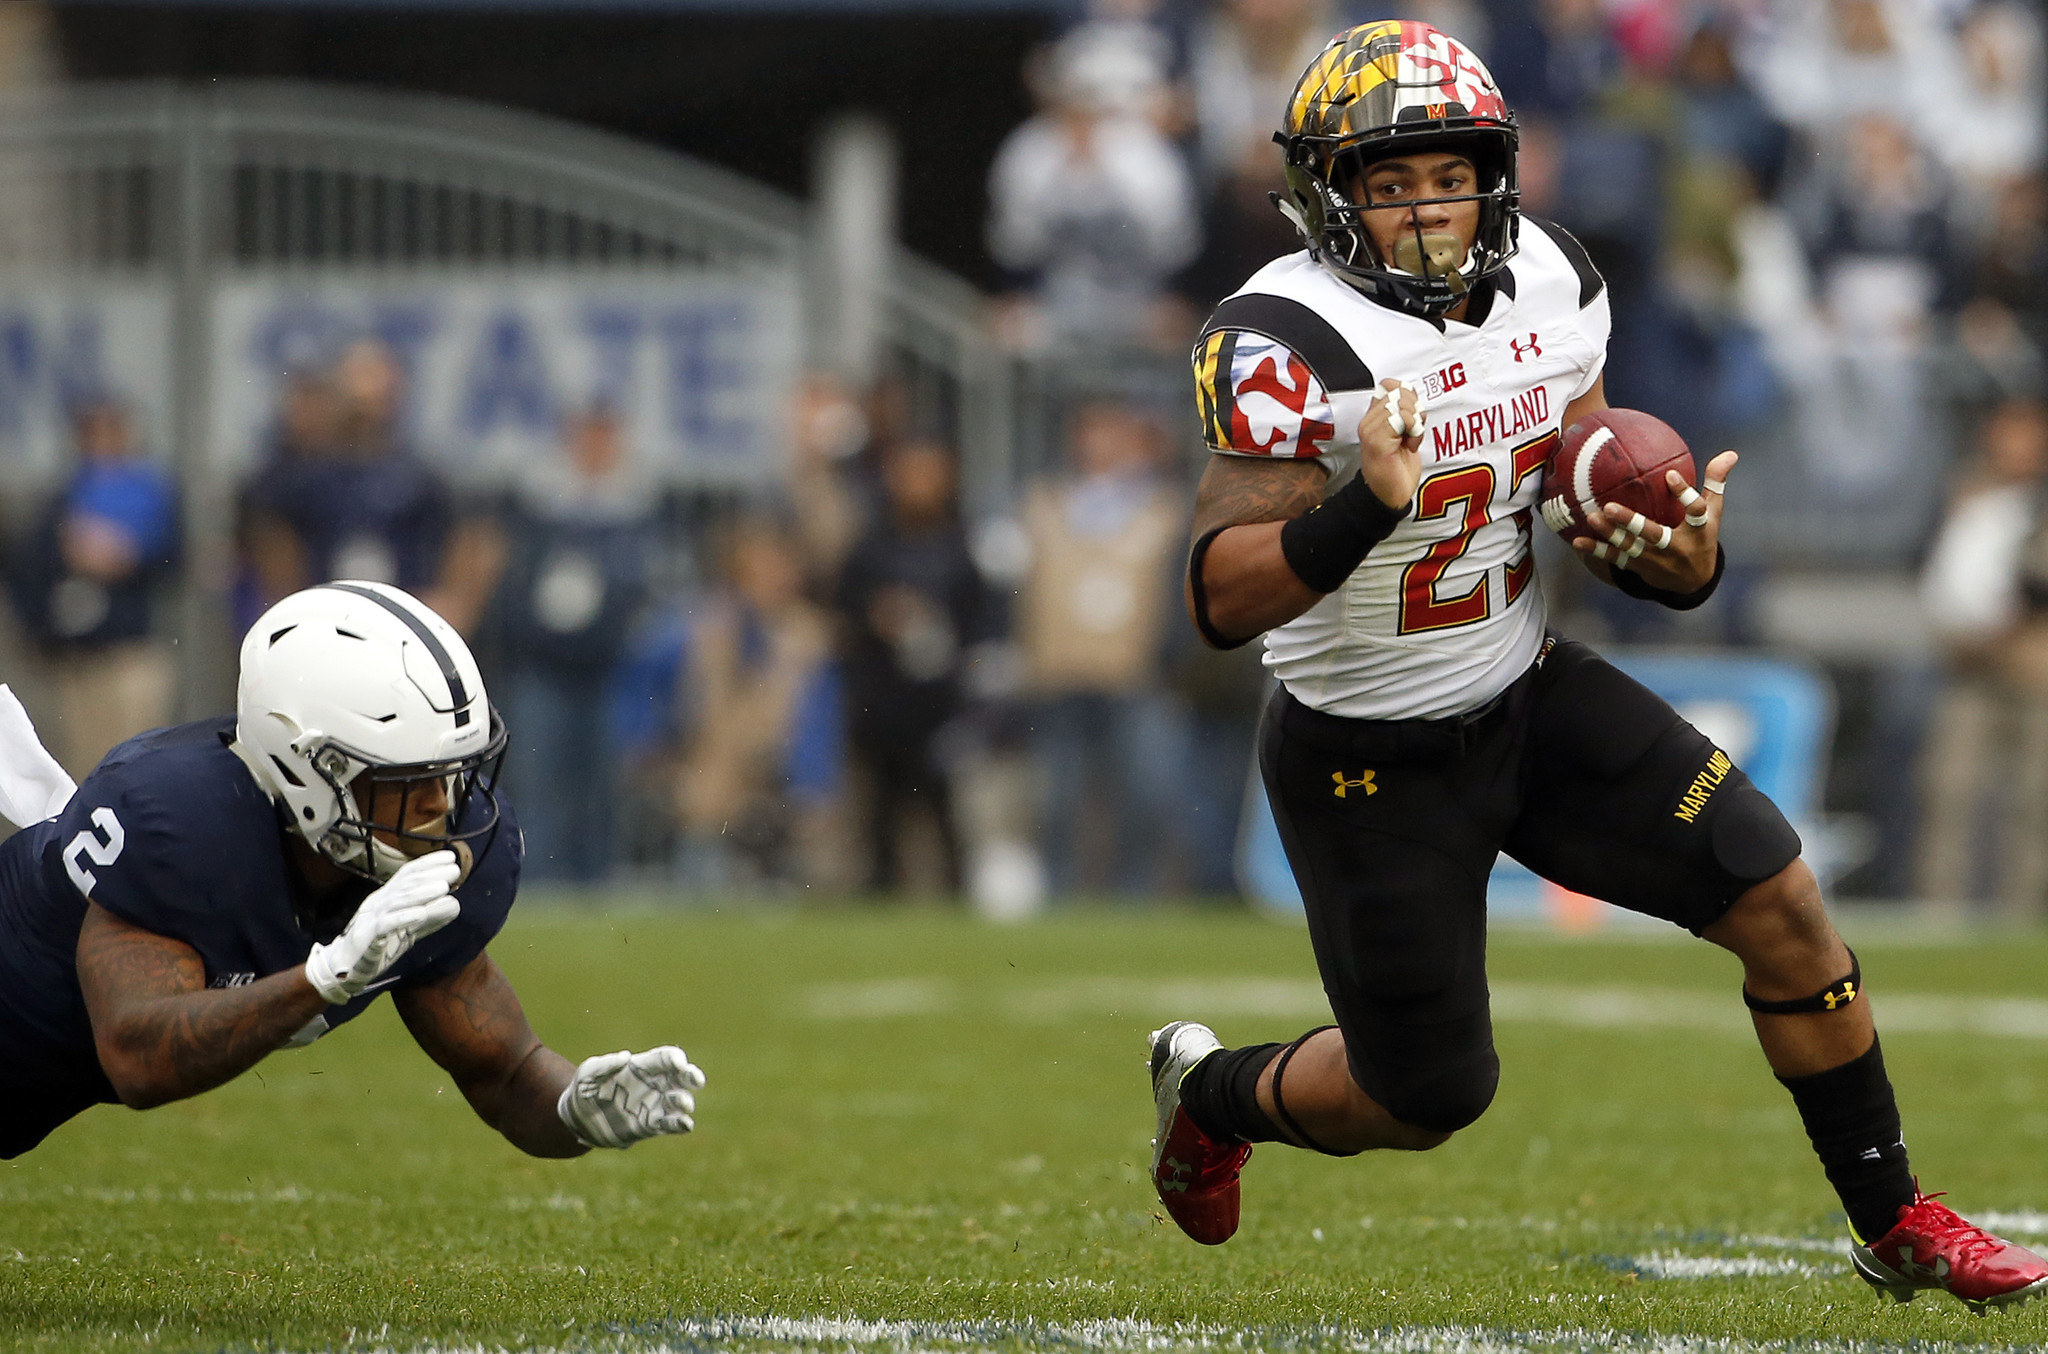 Bal-charges-dropped-against-terps-football-players-lorenzo-harrison-and-d-j-turner-20170111